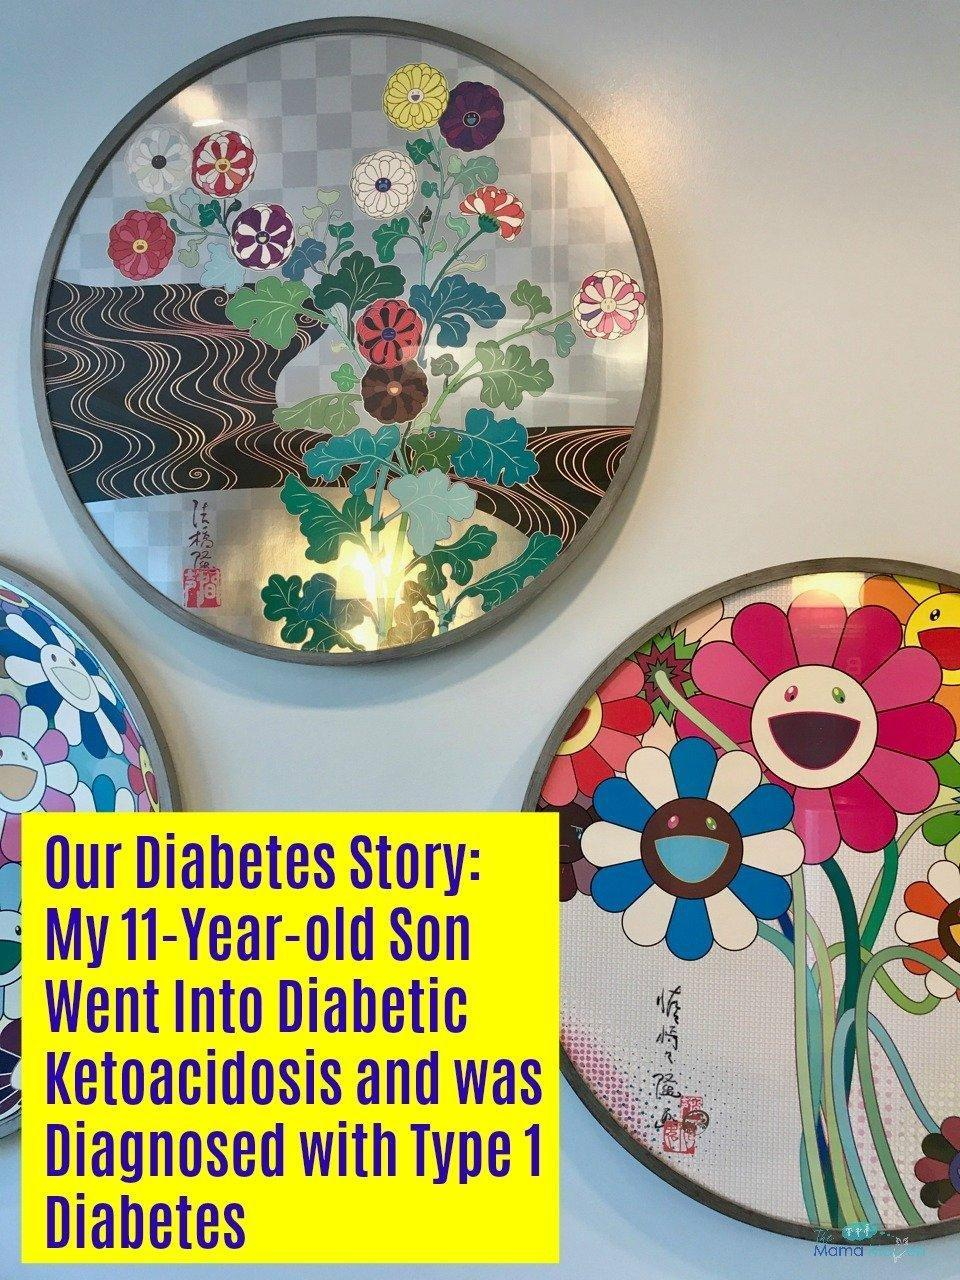 Our Diabetes Story: My 11 Year old Son Went Into Diabetic Ketoacidosis and Was Diagnosed with Type 1 Diabetes